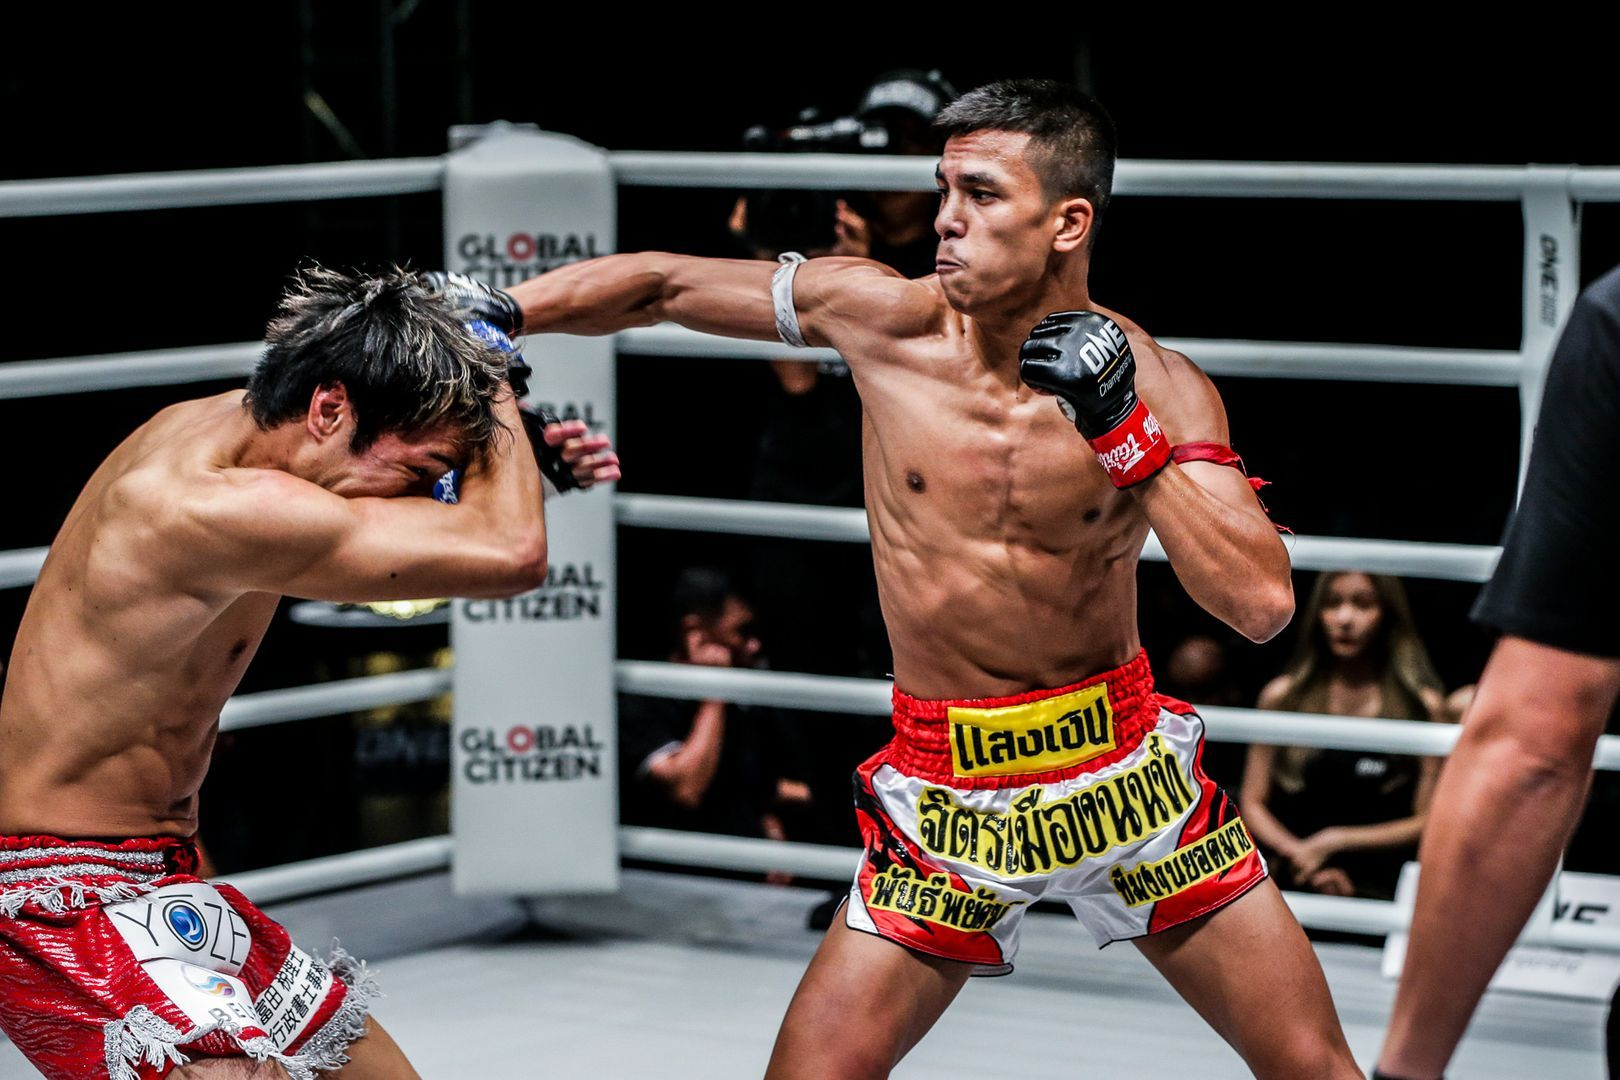 Muay Thai star Panpayak Jitmuangnon lands a right jab on his opponent